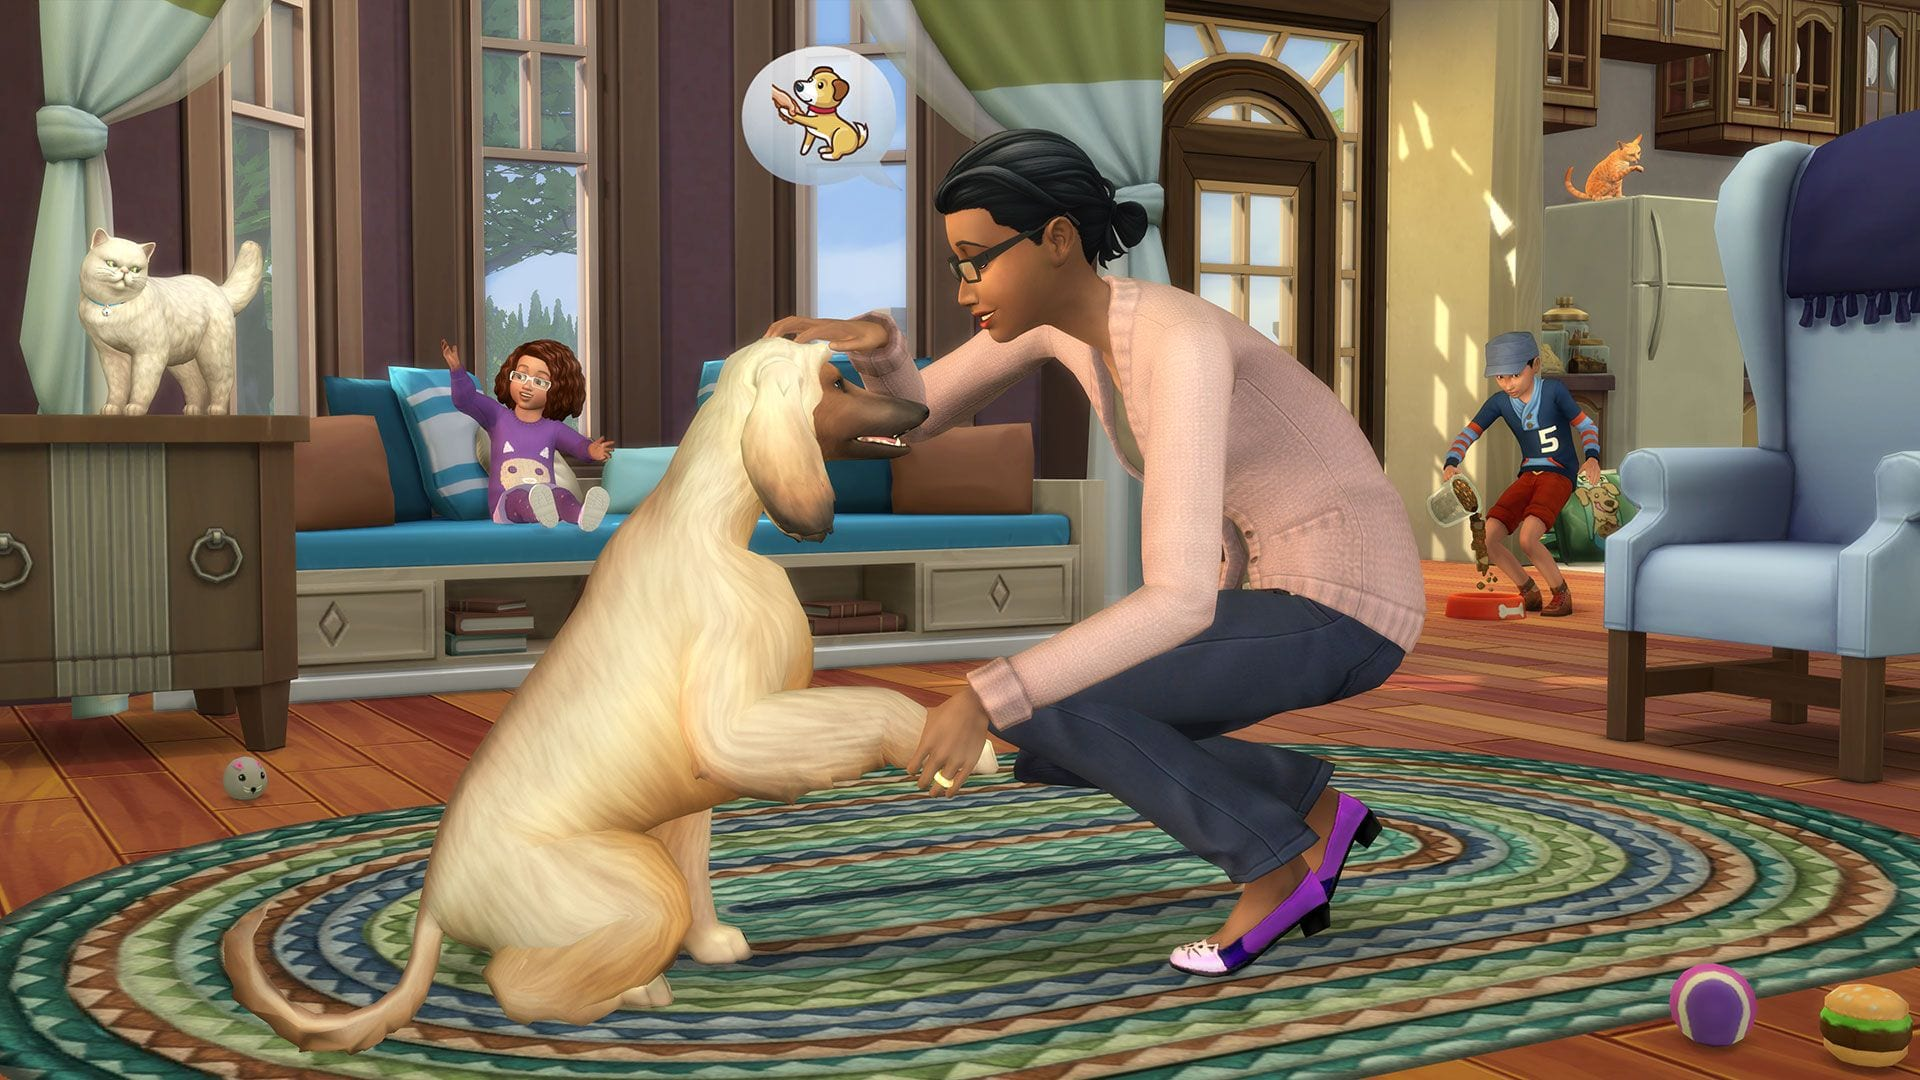 Cats and Dogs Invade Sims 4 in Latest Expansion